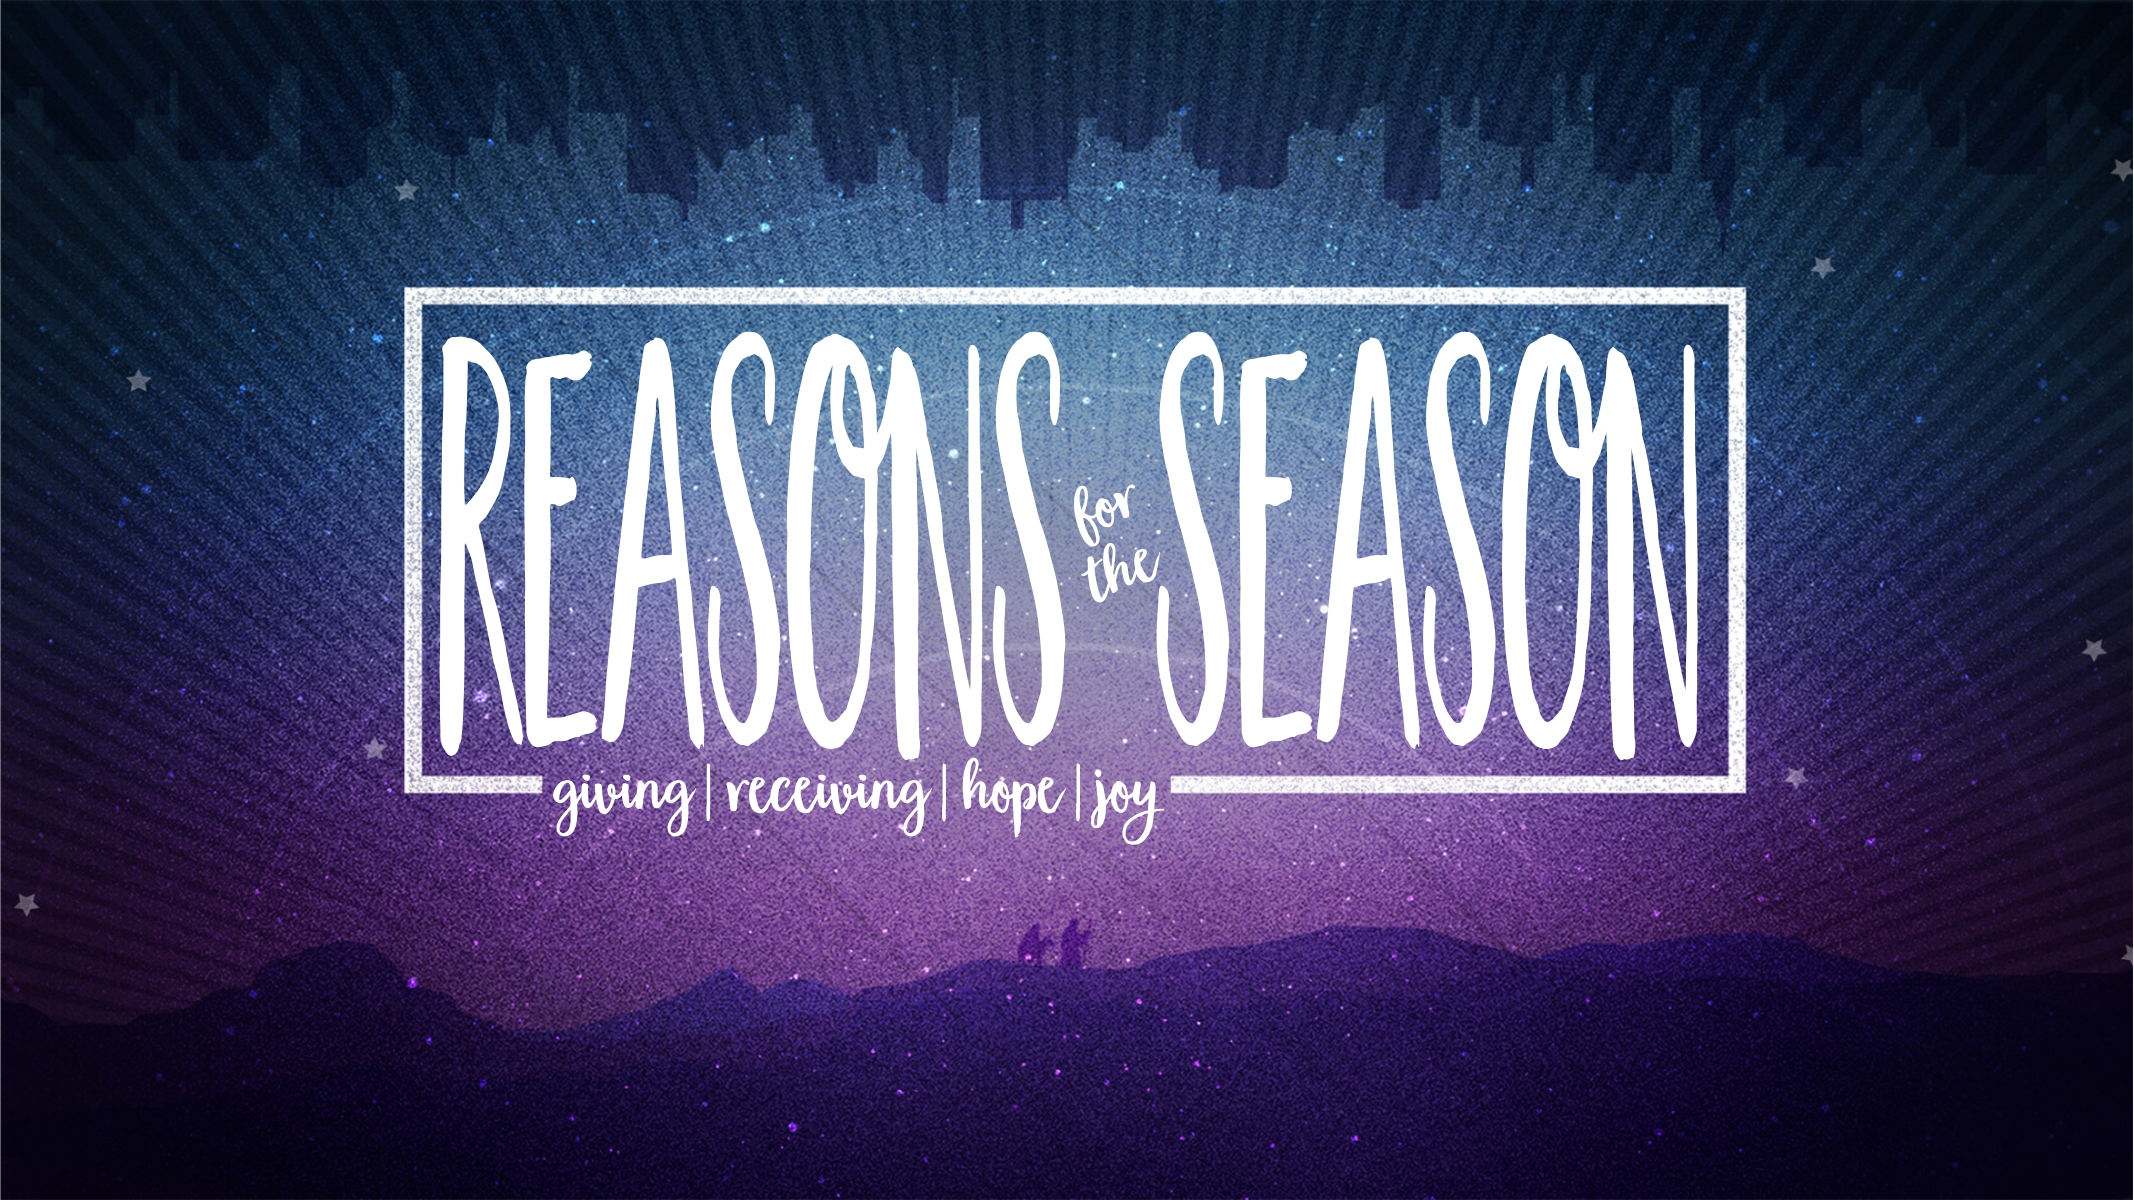 A Season of Getting